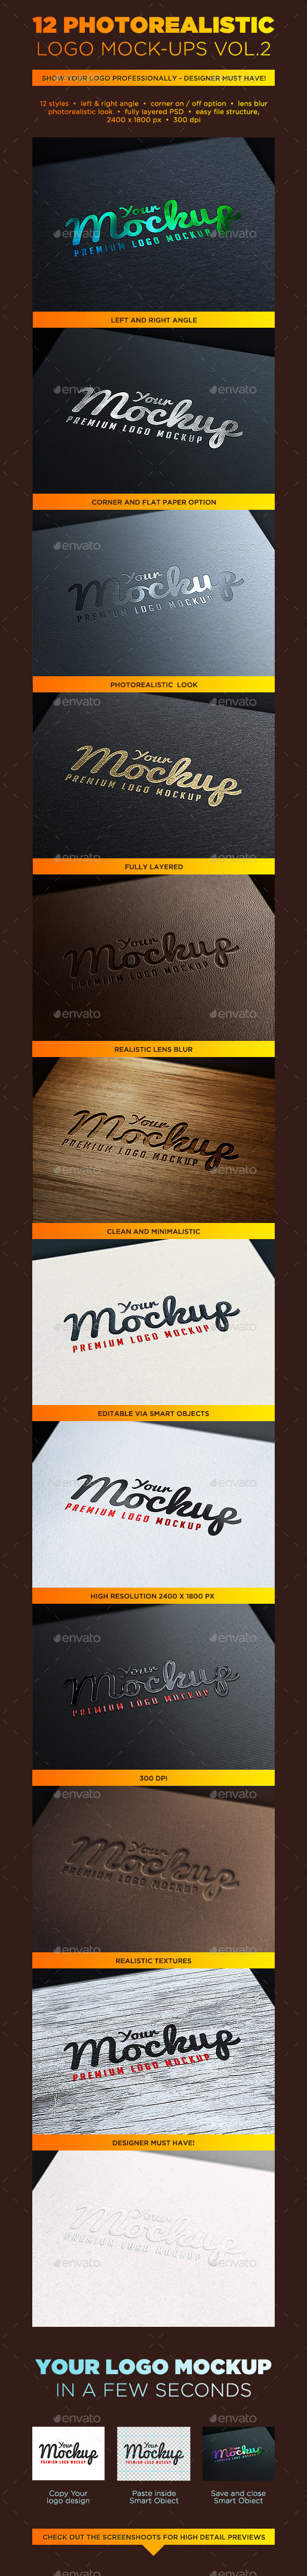 Your Mockup - Logo Mockups VOL.2 - Logo Product Mock-Ups